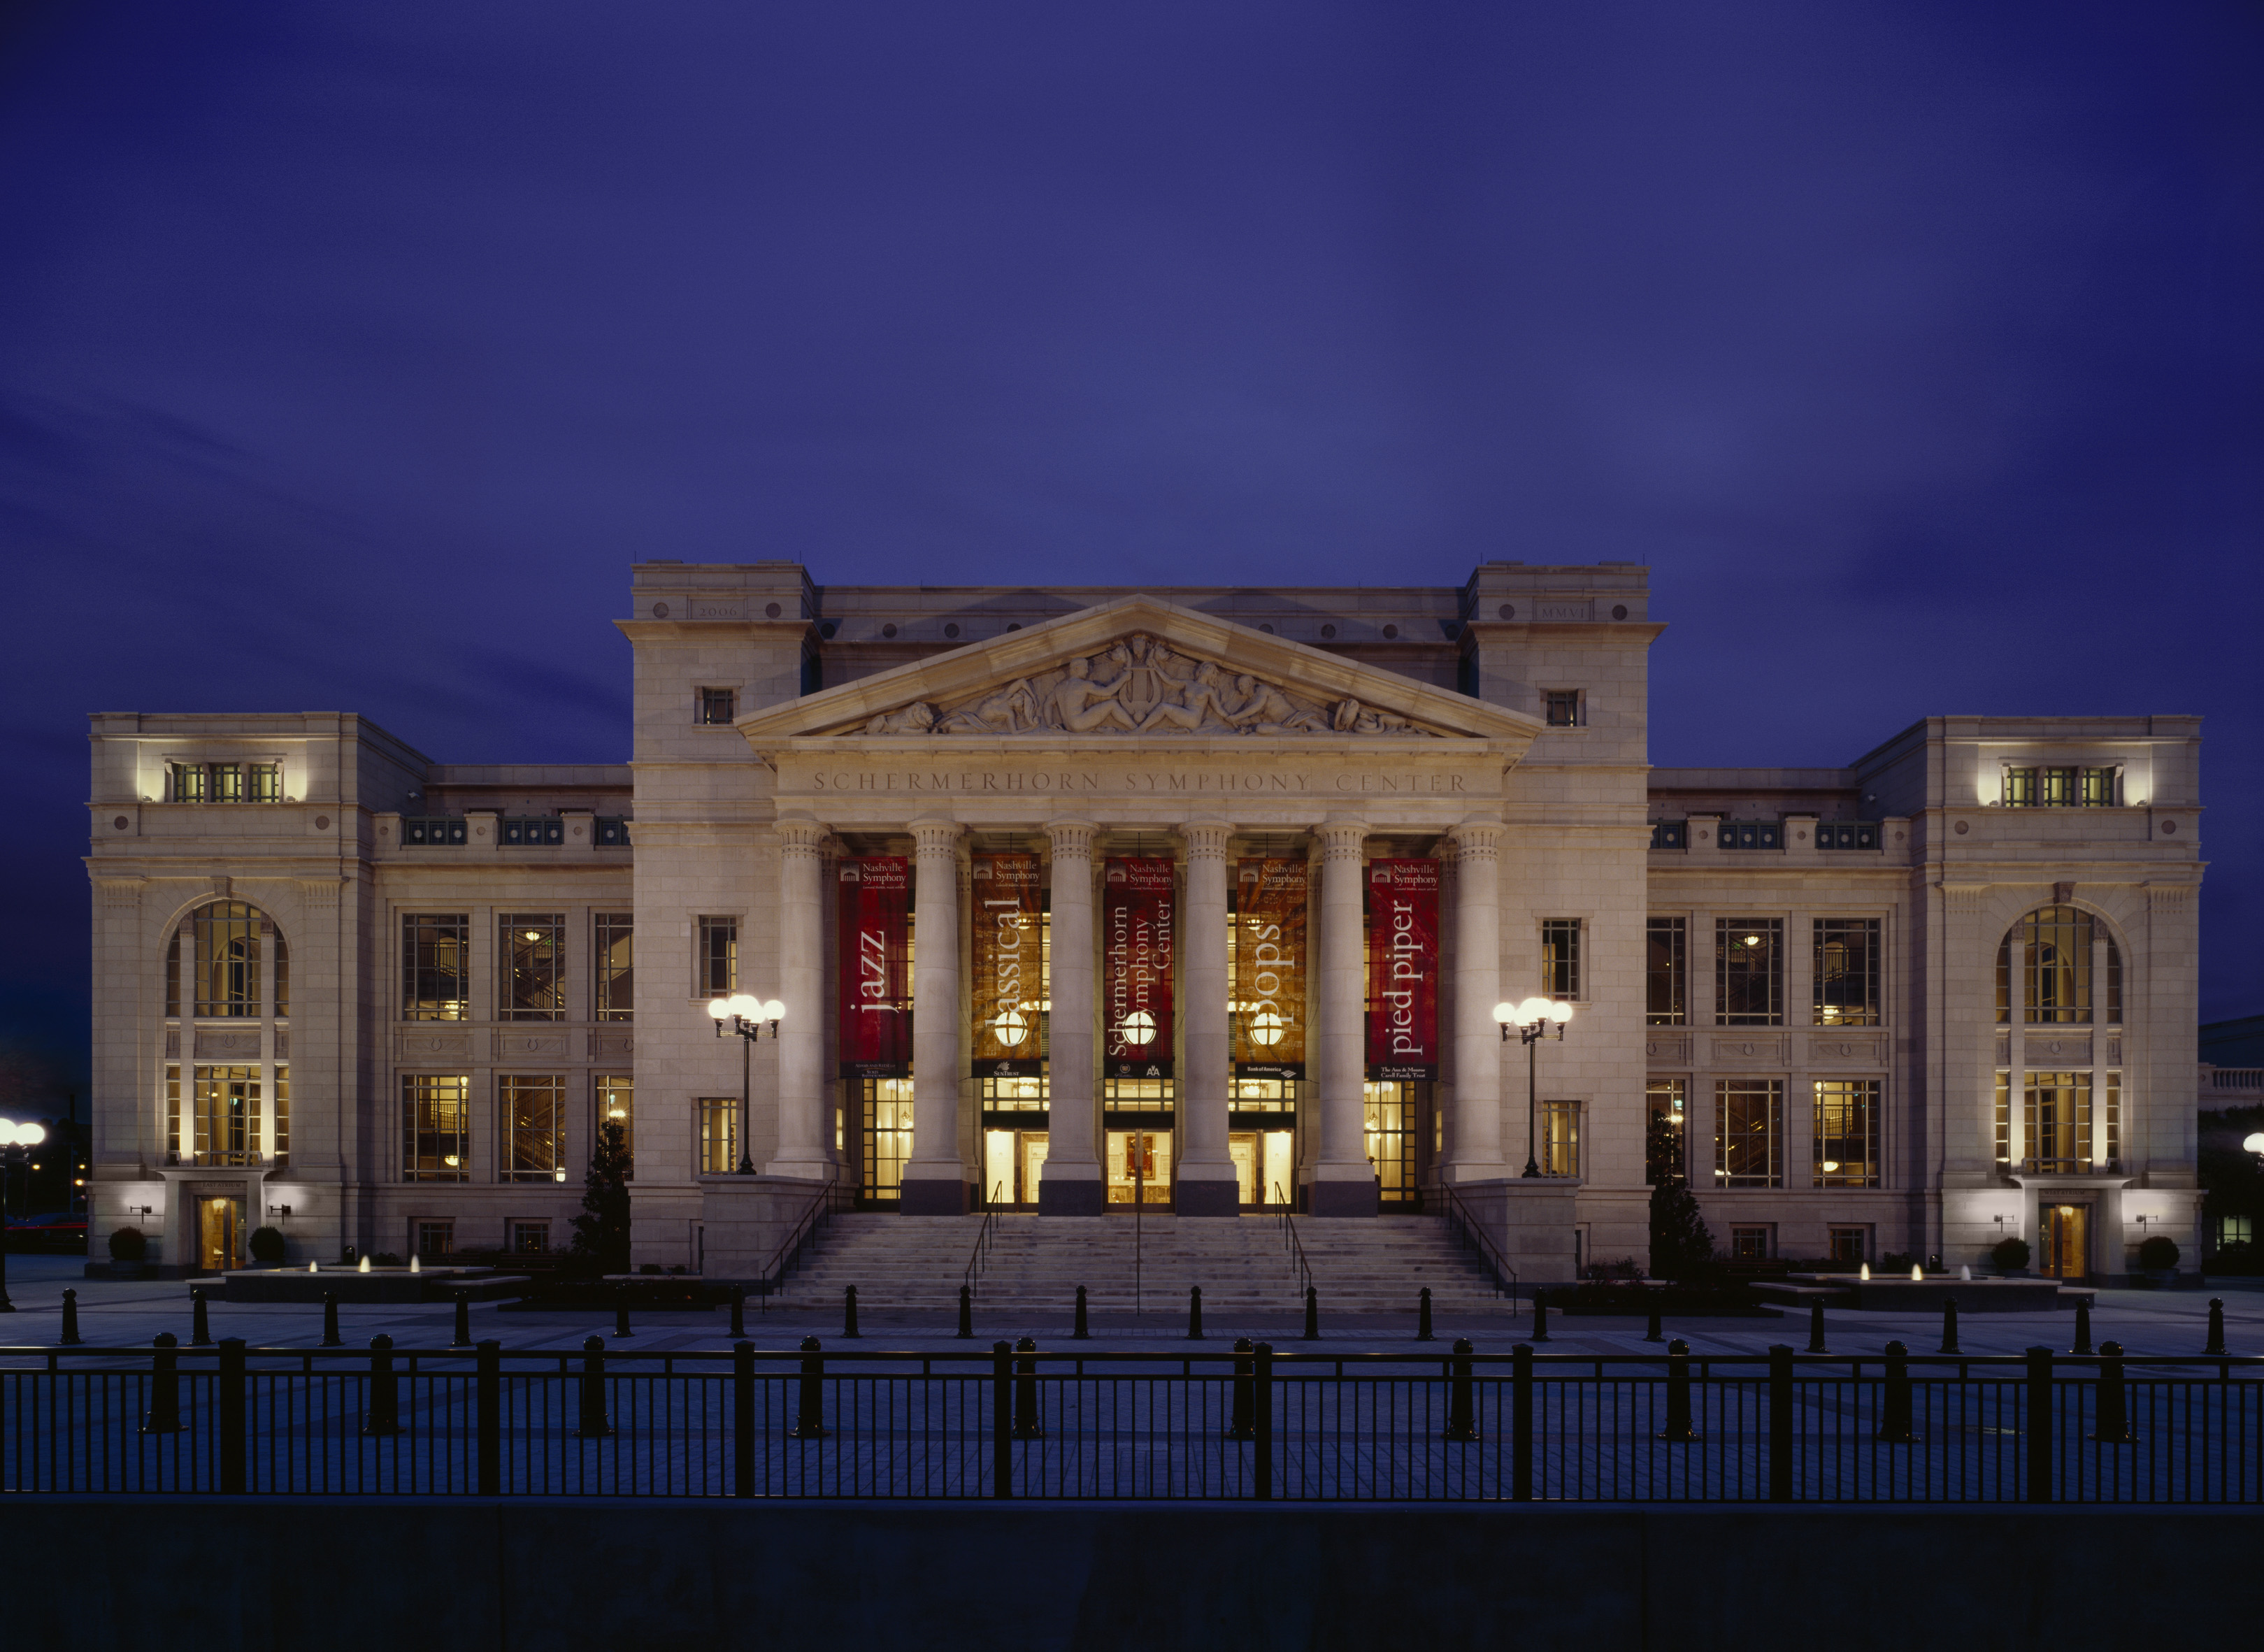 The Schermerhorn Symphony Center was built in 2006 and is home to one of the world's premier orchestras.